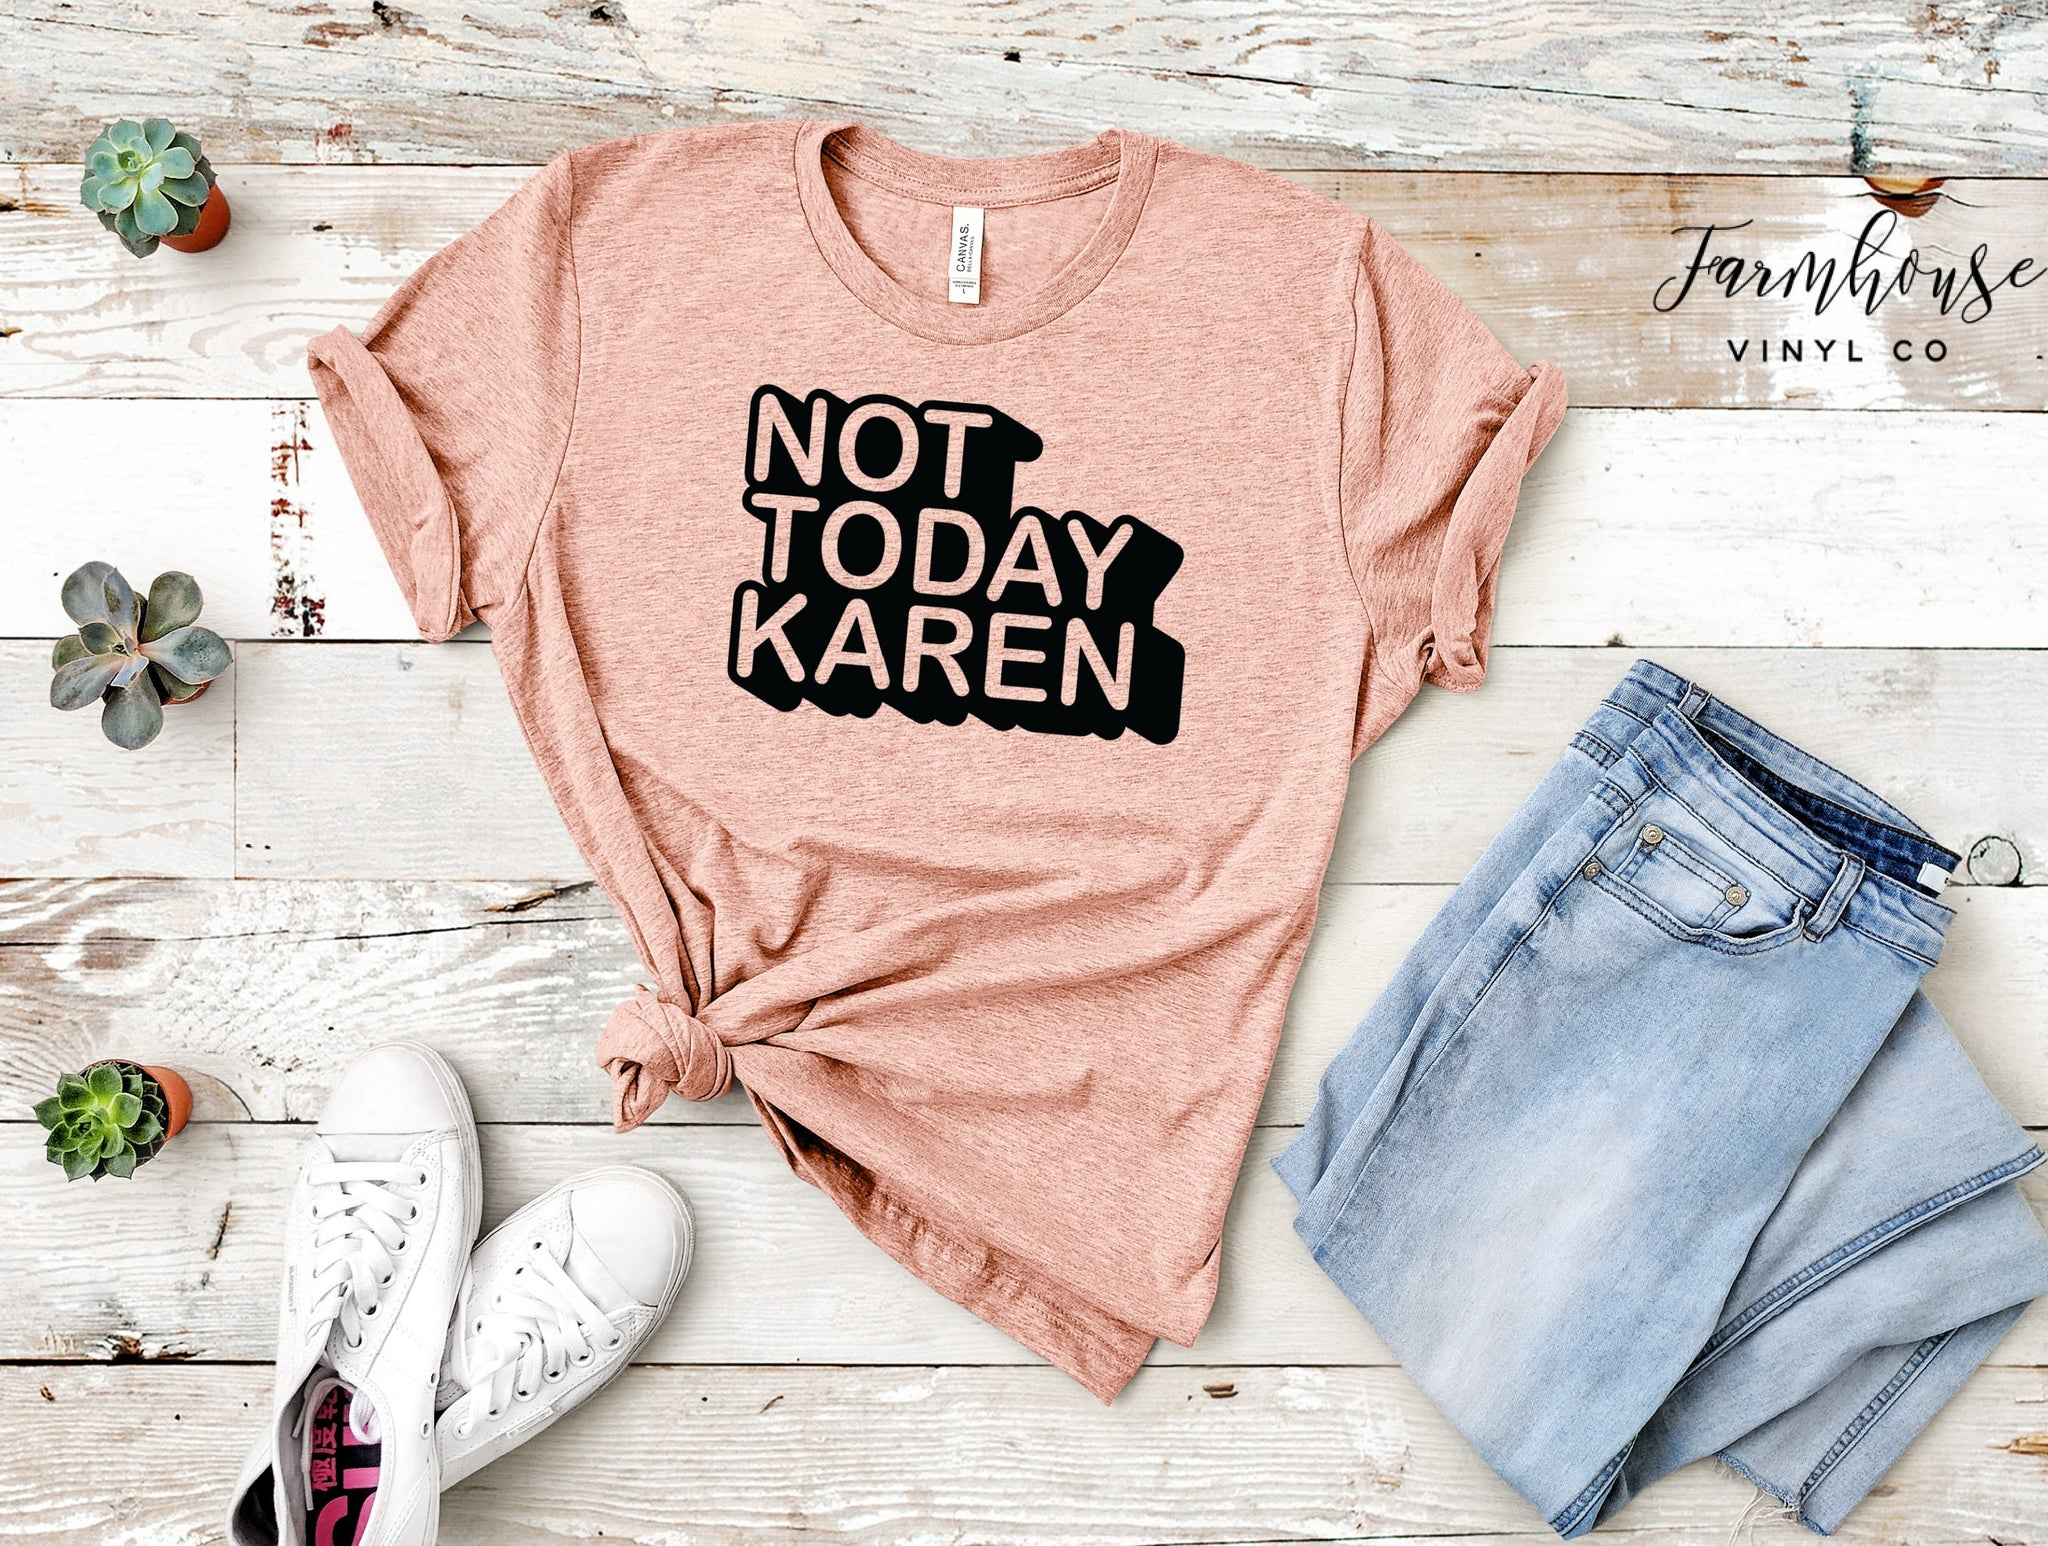 Not Today Karen Bella and Canvas Unisex Shirt